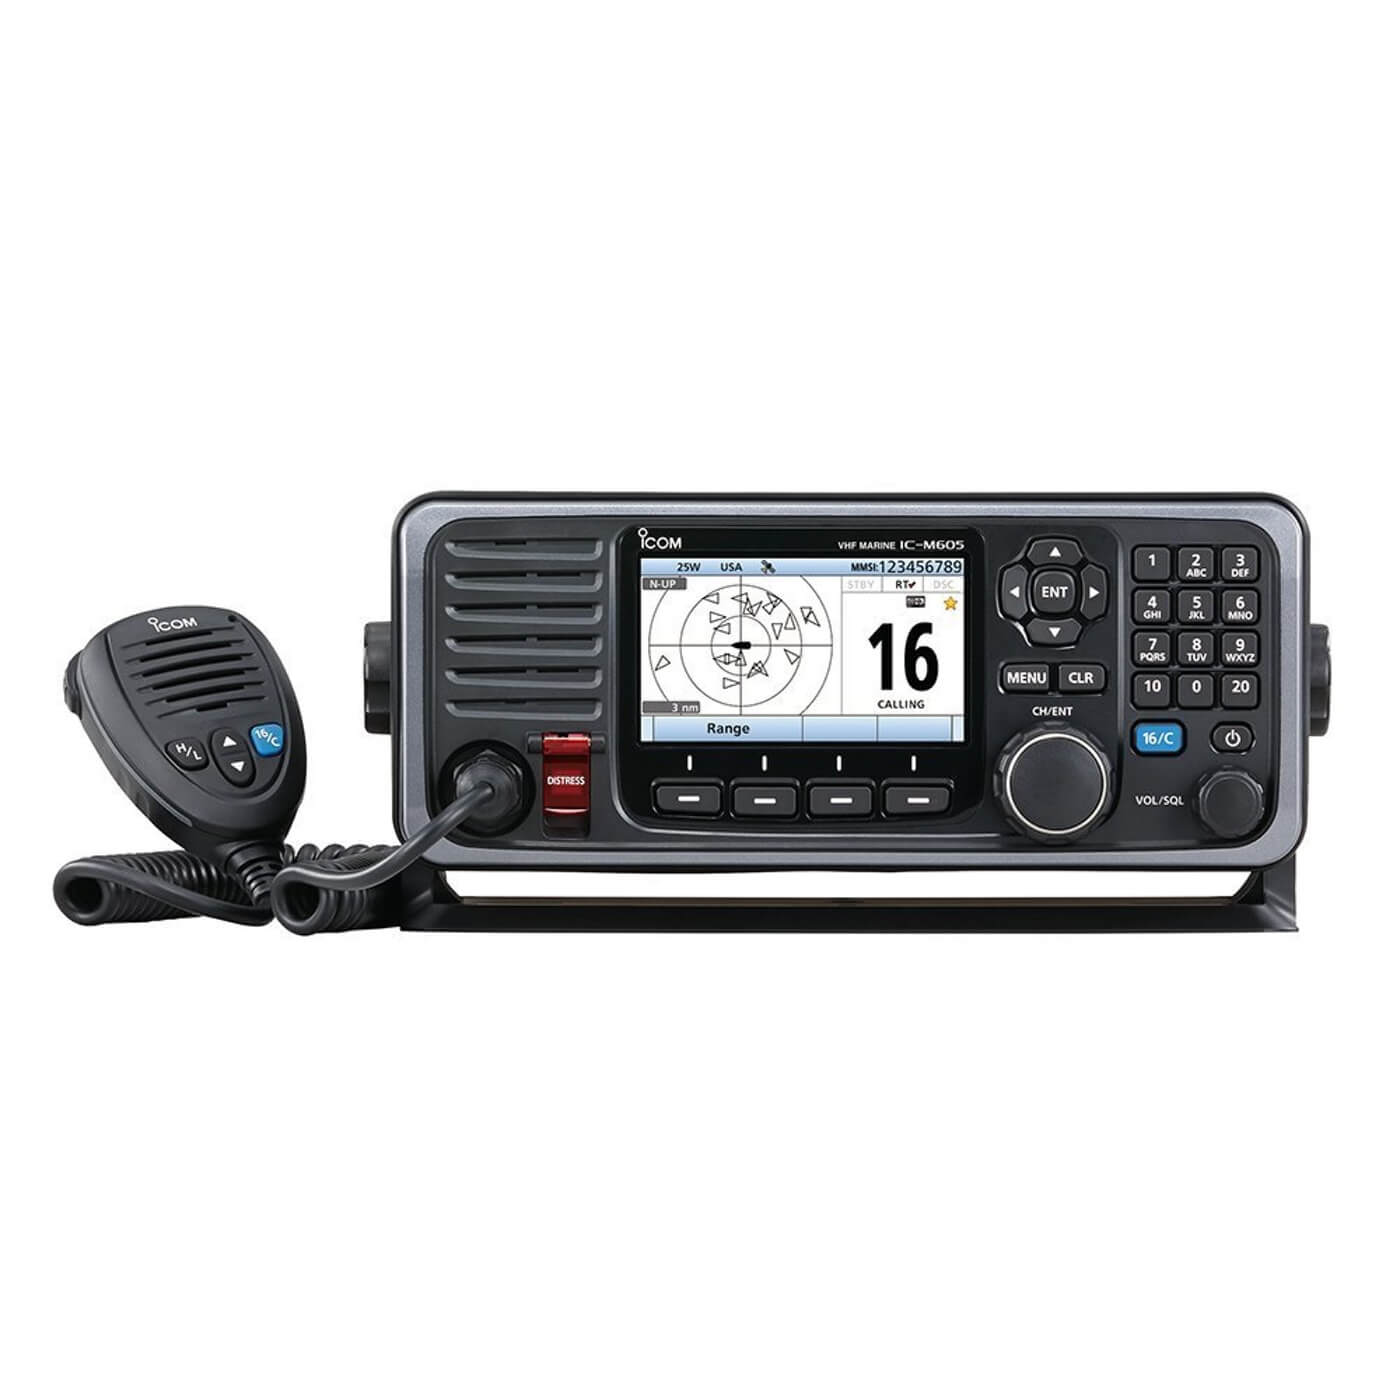 ICOM M605 review